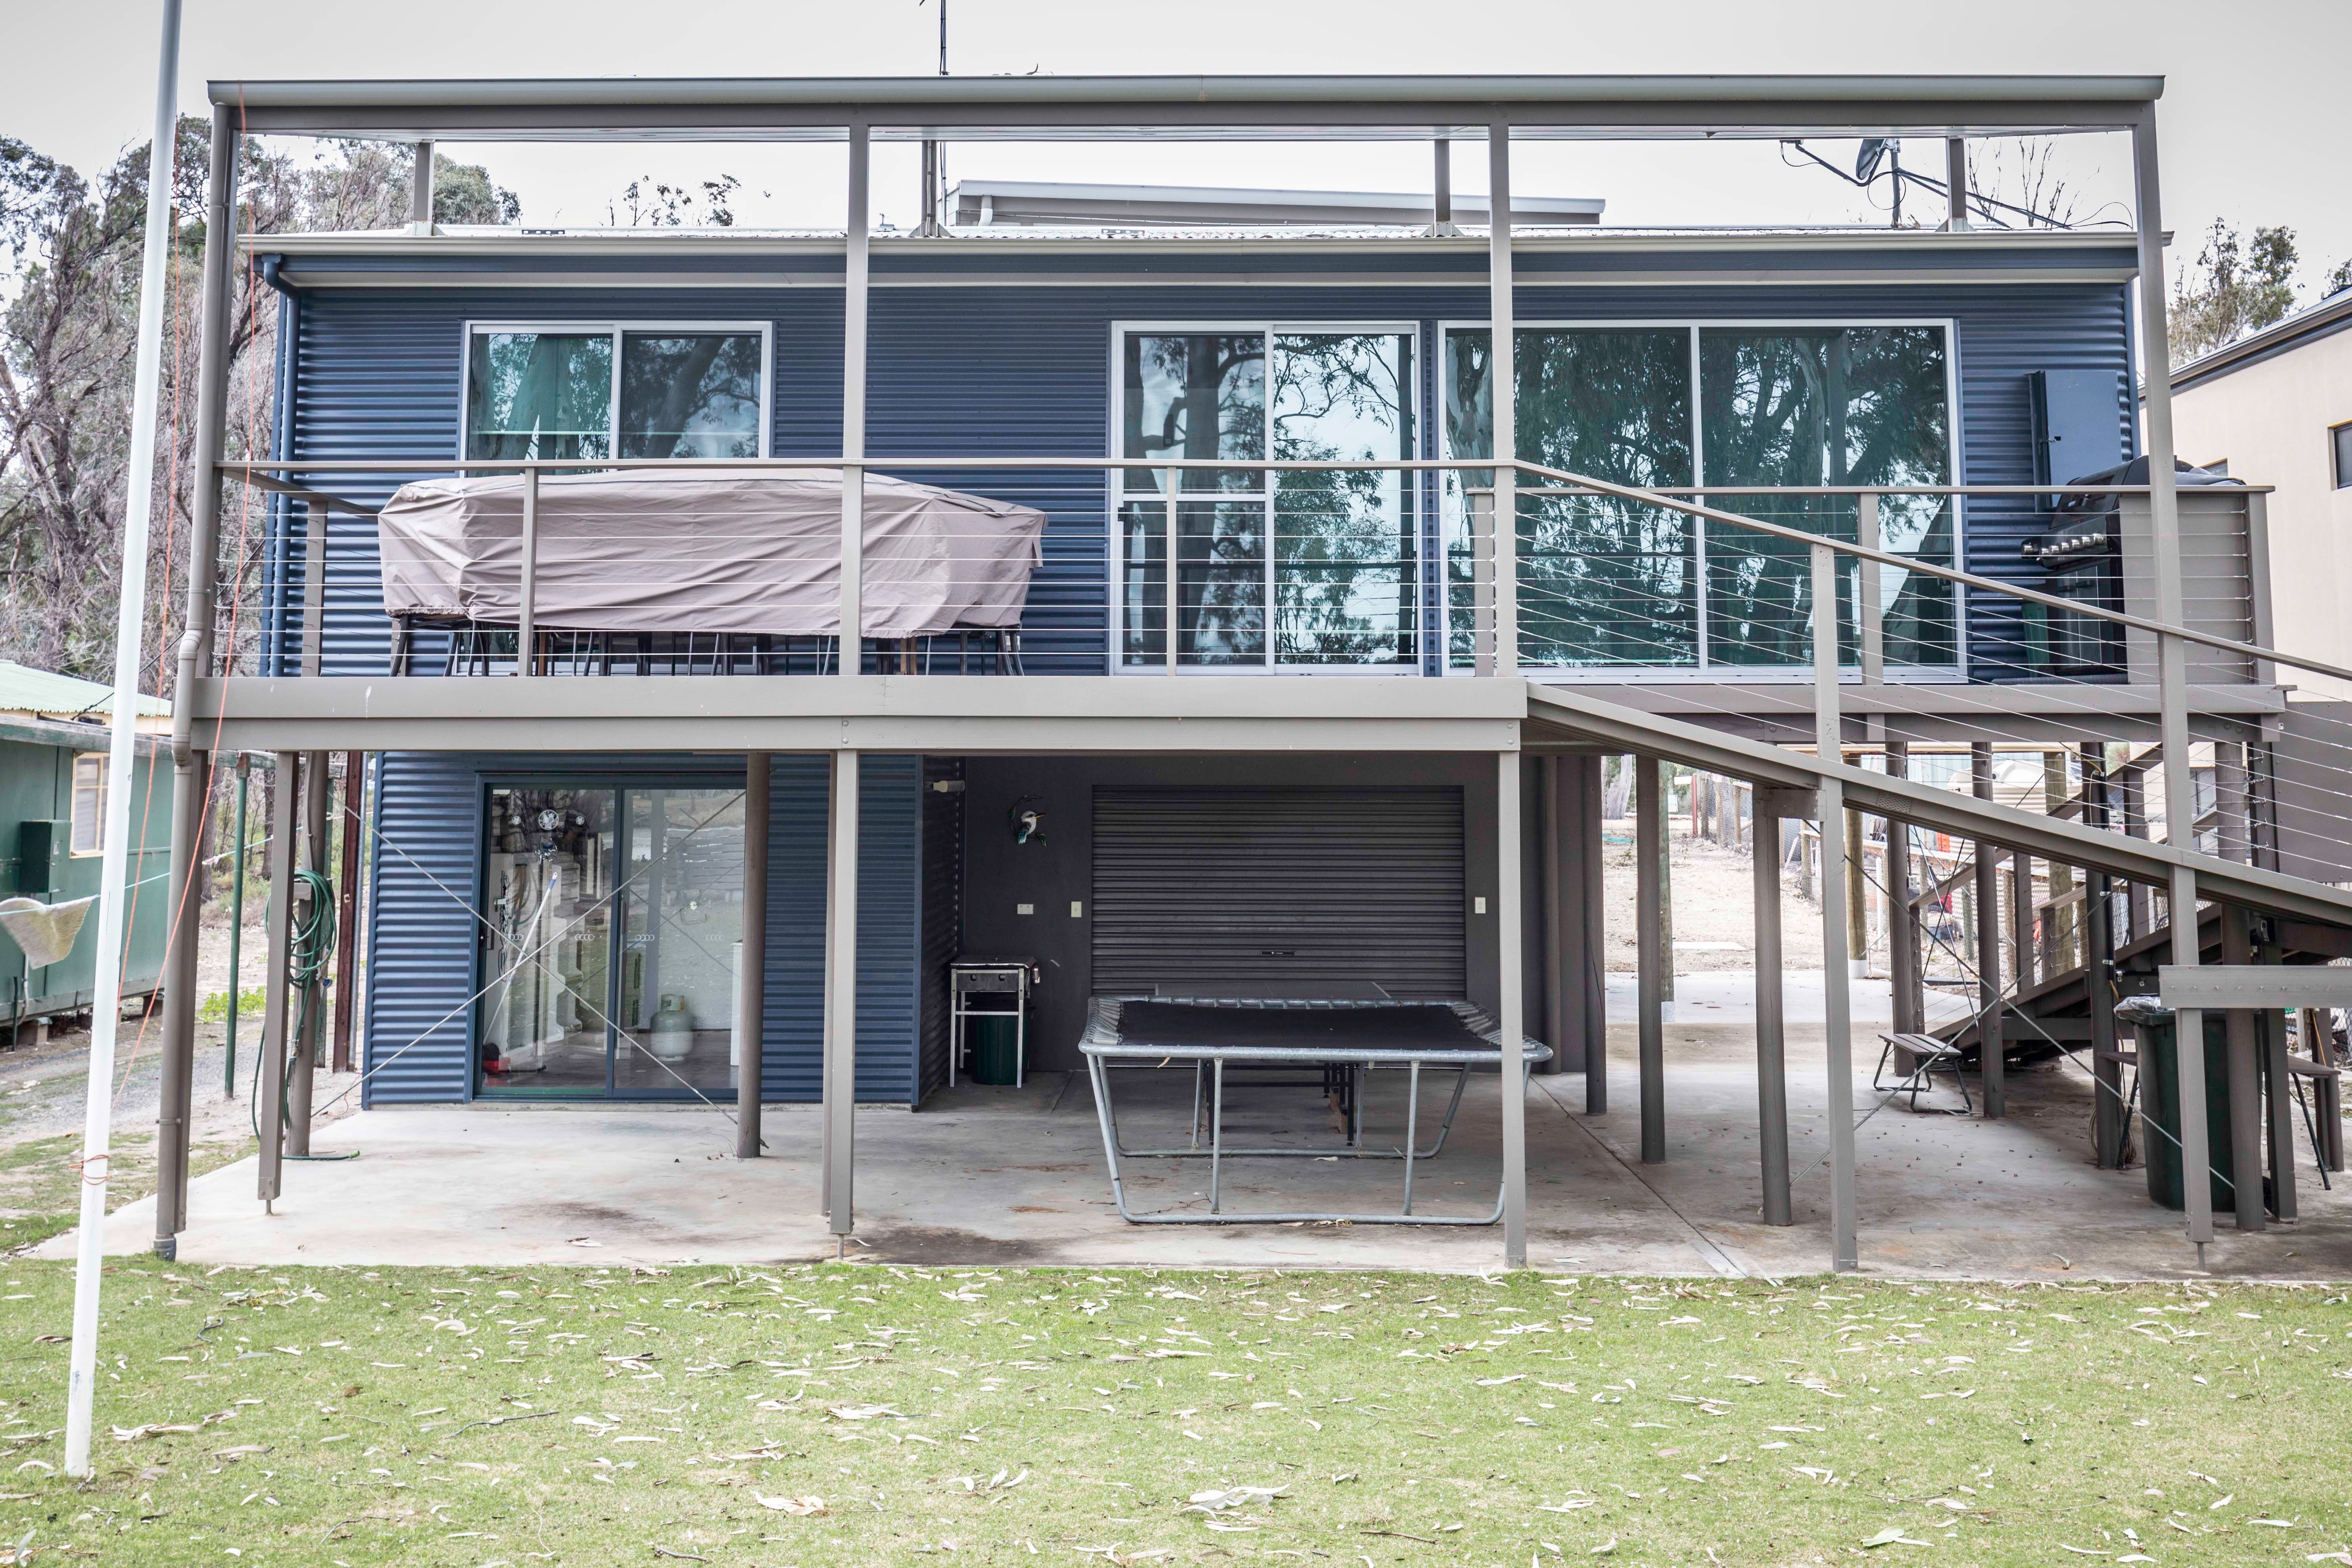 48 Echidna Ave Murbko -River Shack Rentals - WA Accommodation